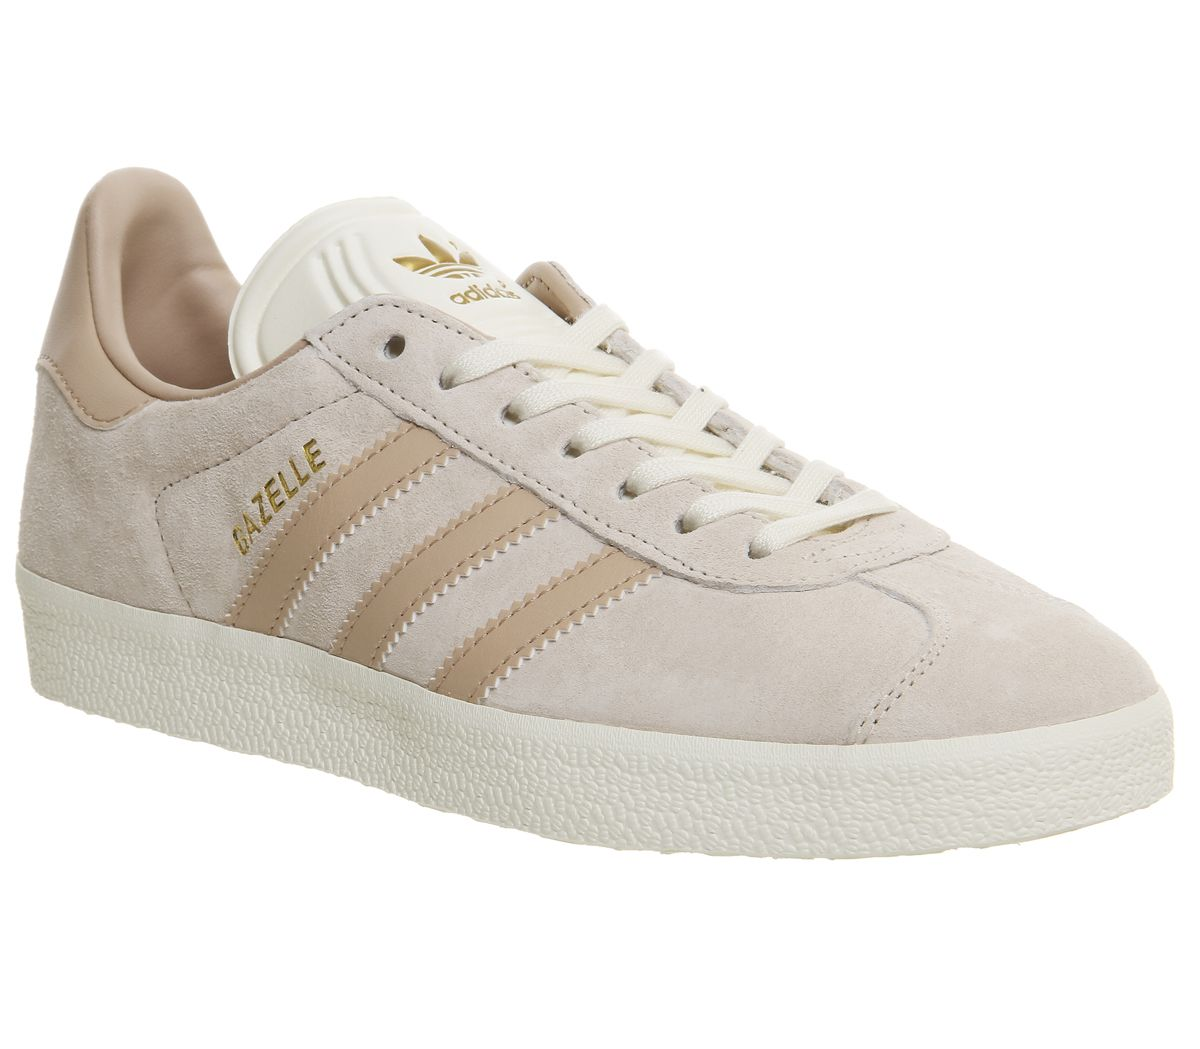 huge selection of b96b4 41f68 adidas Gazelle Trainers Linen Dust Pearl Cream - Hers Exclusives